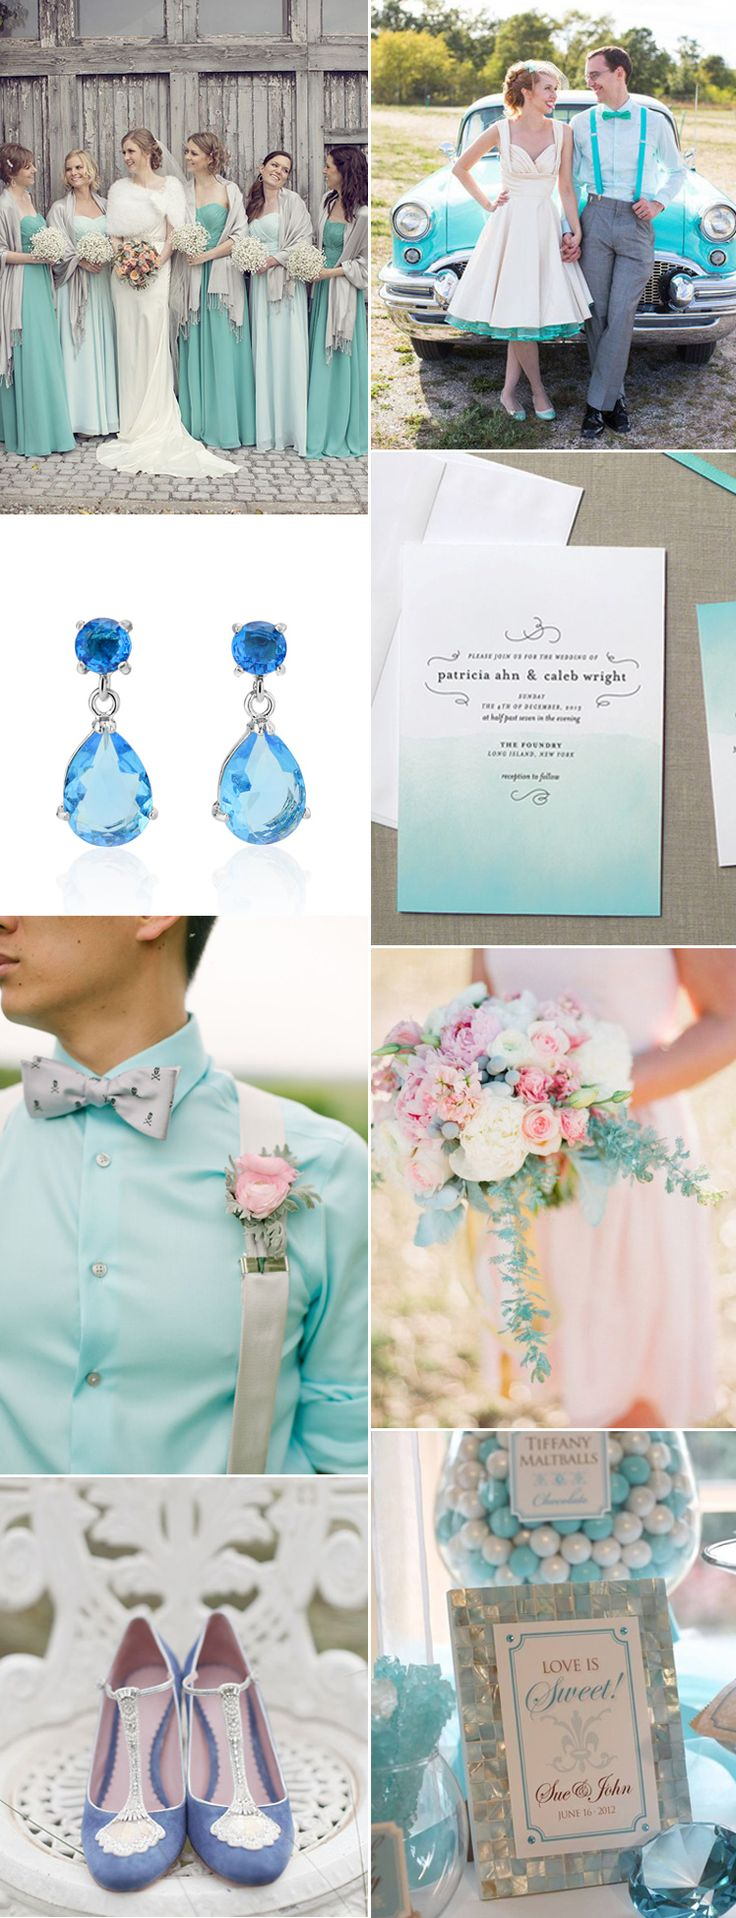 Inspiration board with ideas on how to incorporate the beautiful March birthstone, Aquamarine, into your wedding theme. From the groom to the decor we love this hue